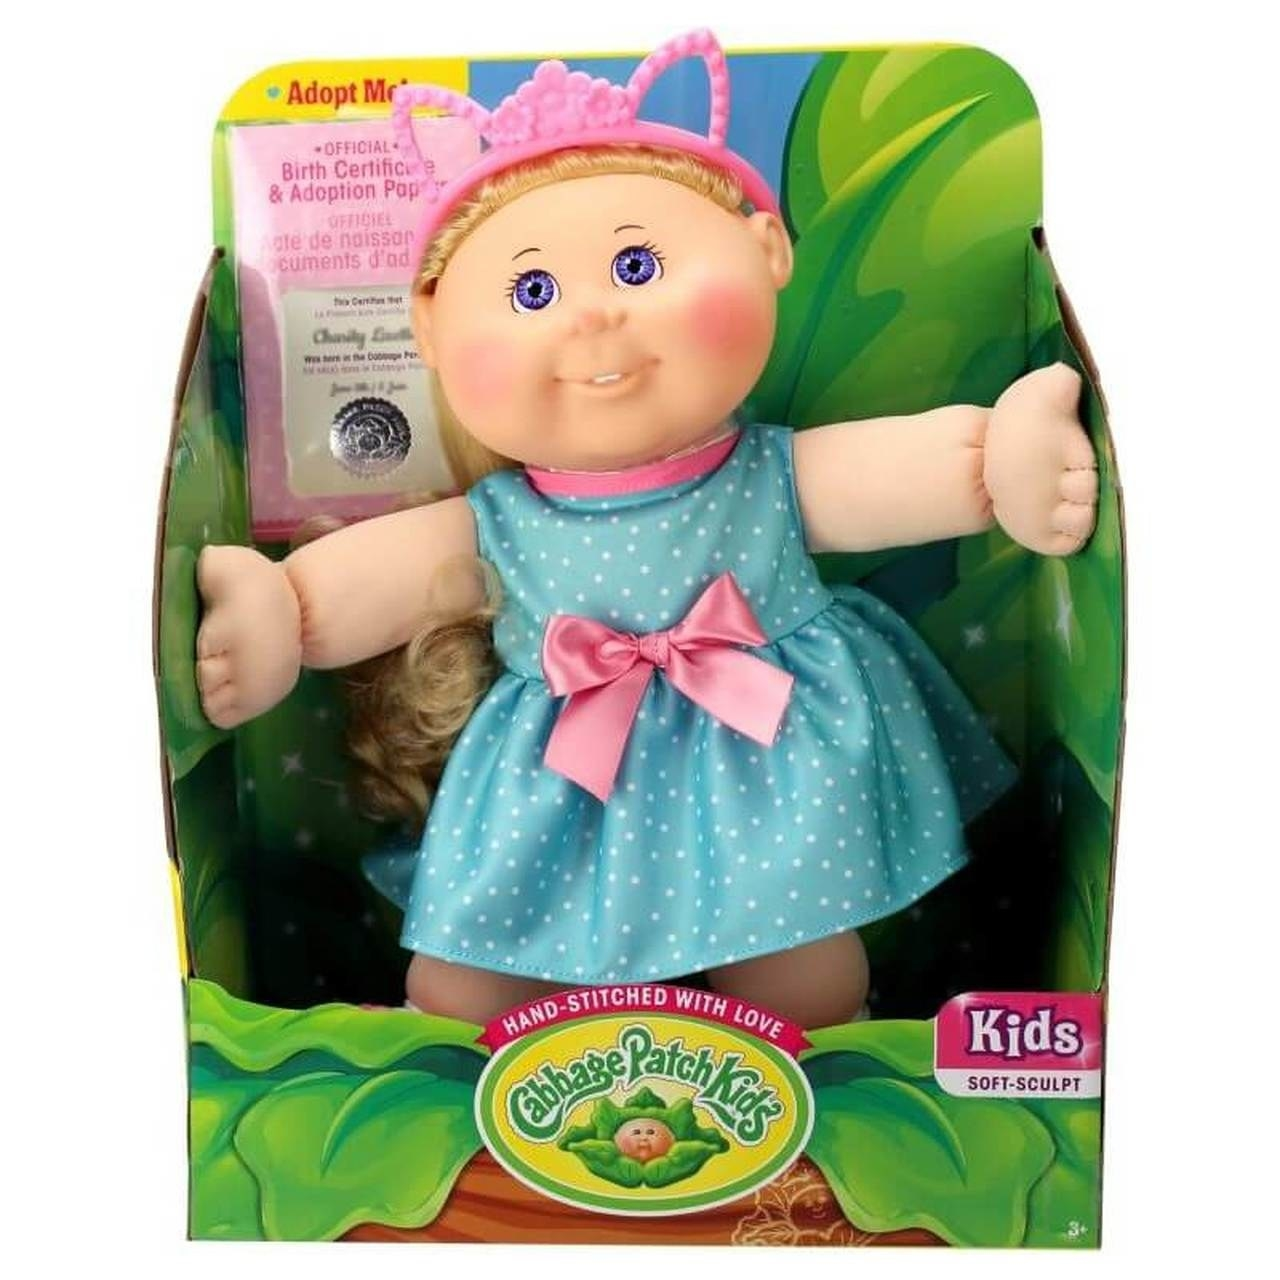 Cabbage Patch Doll still in their box with their hands outstretched